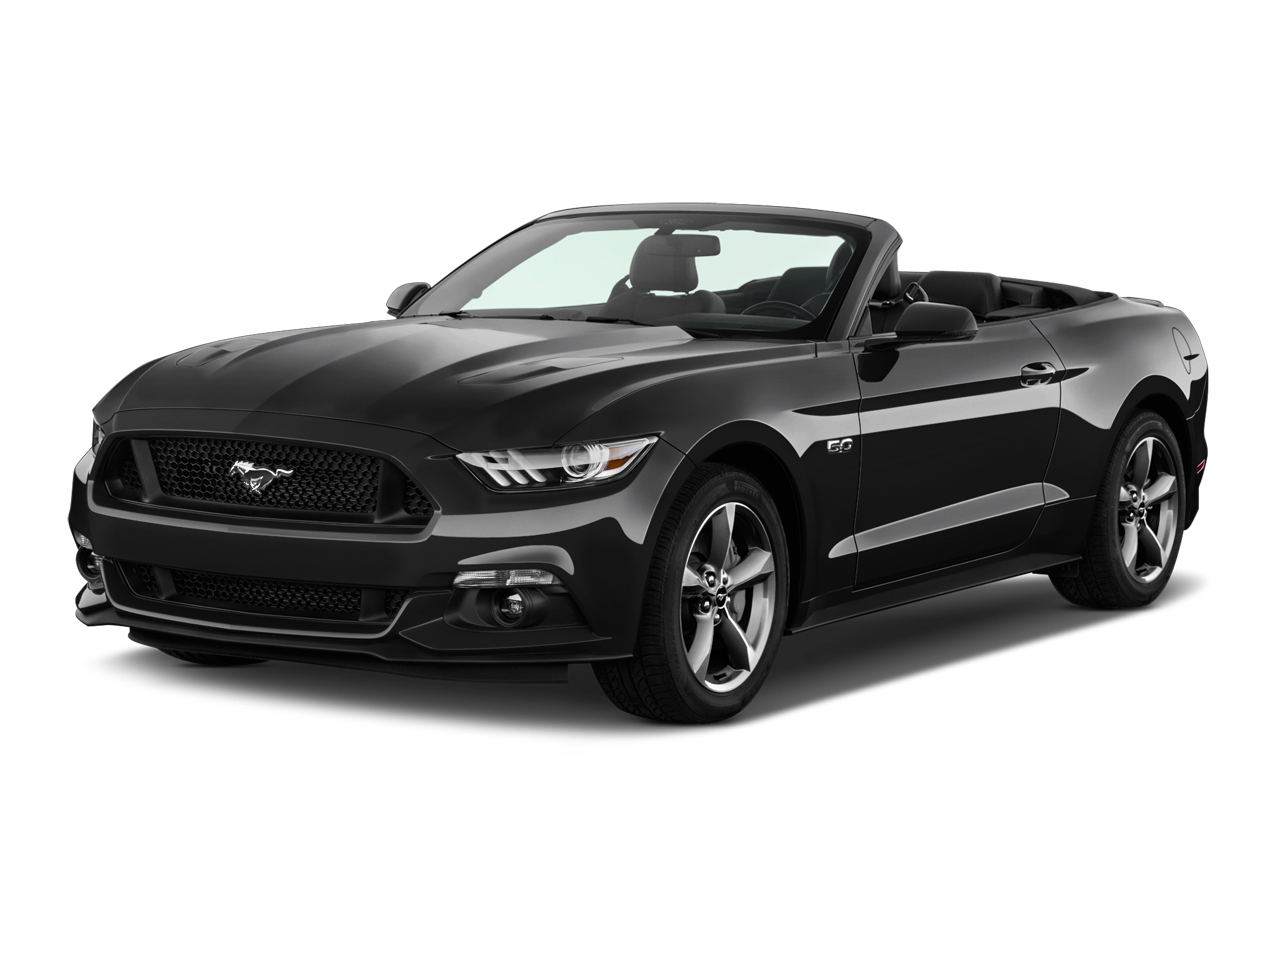 new 2017 ford mustang gt premium shelby super snake convertible seattle wa pierre auto centers. Black Bedroom Furniture Sets. Home Design Ideas